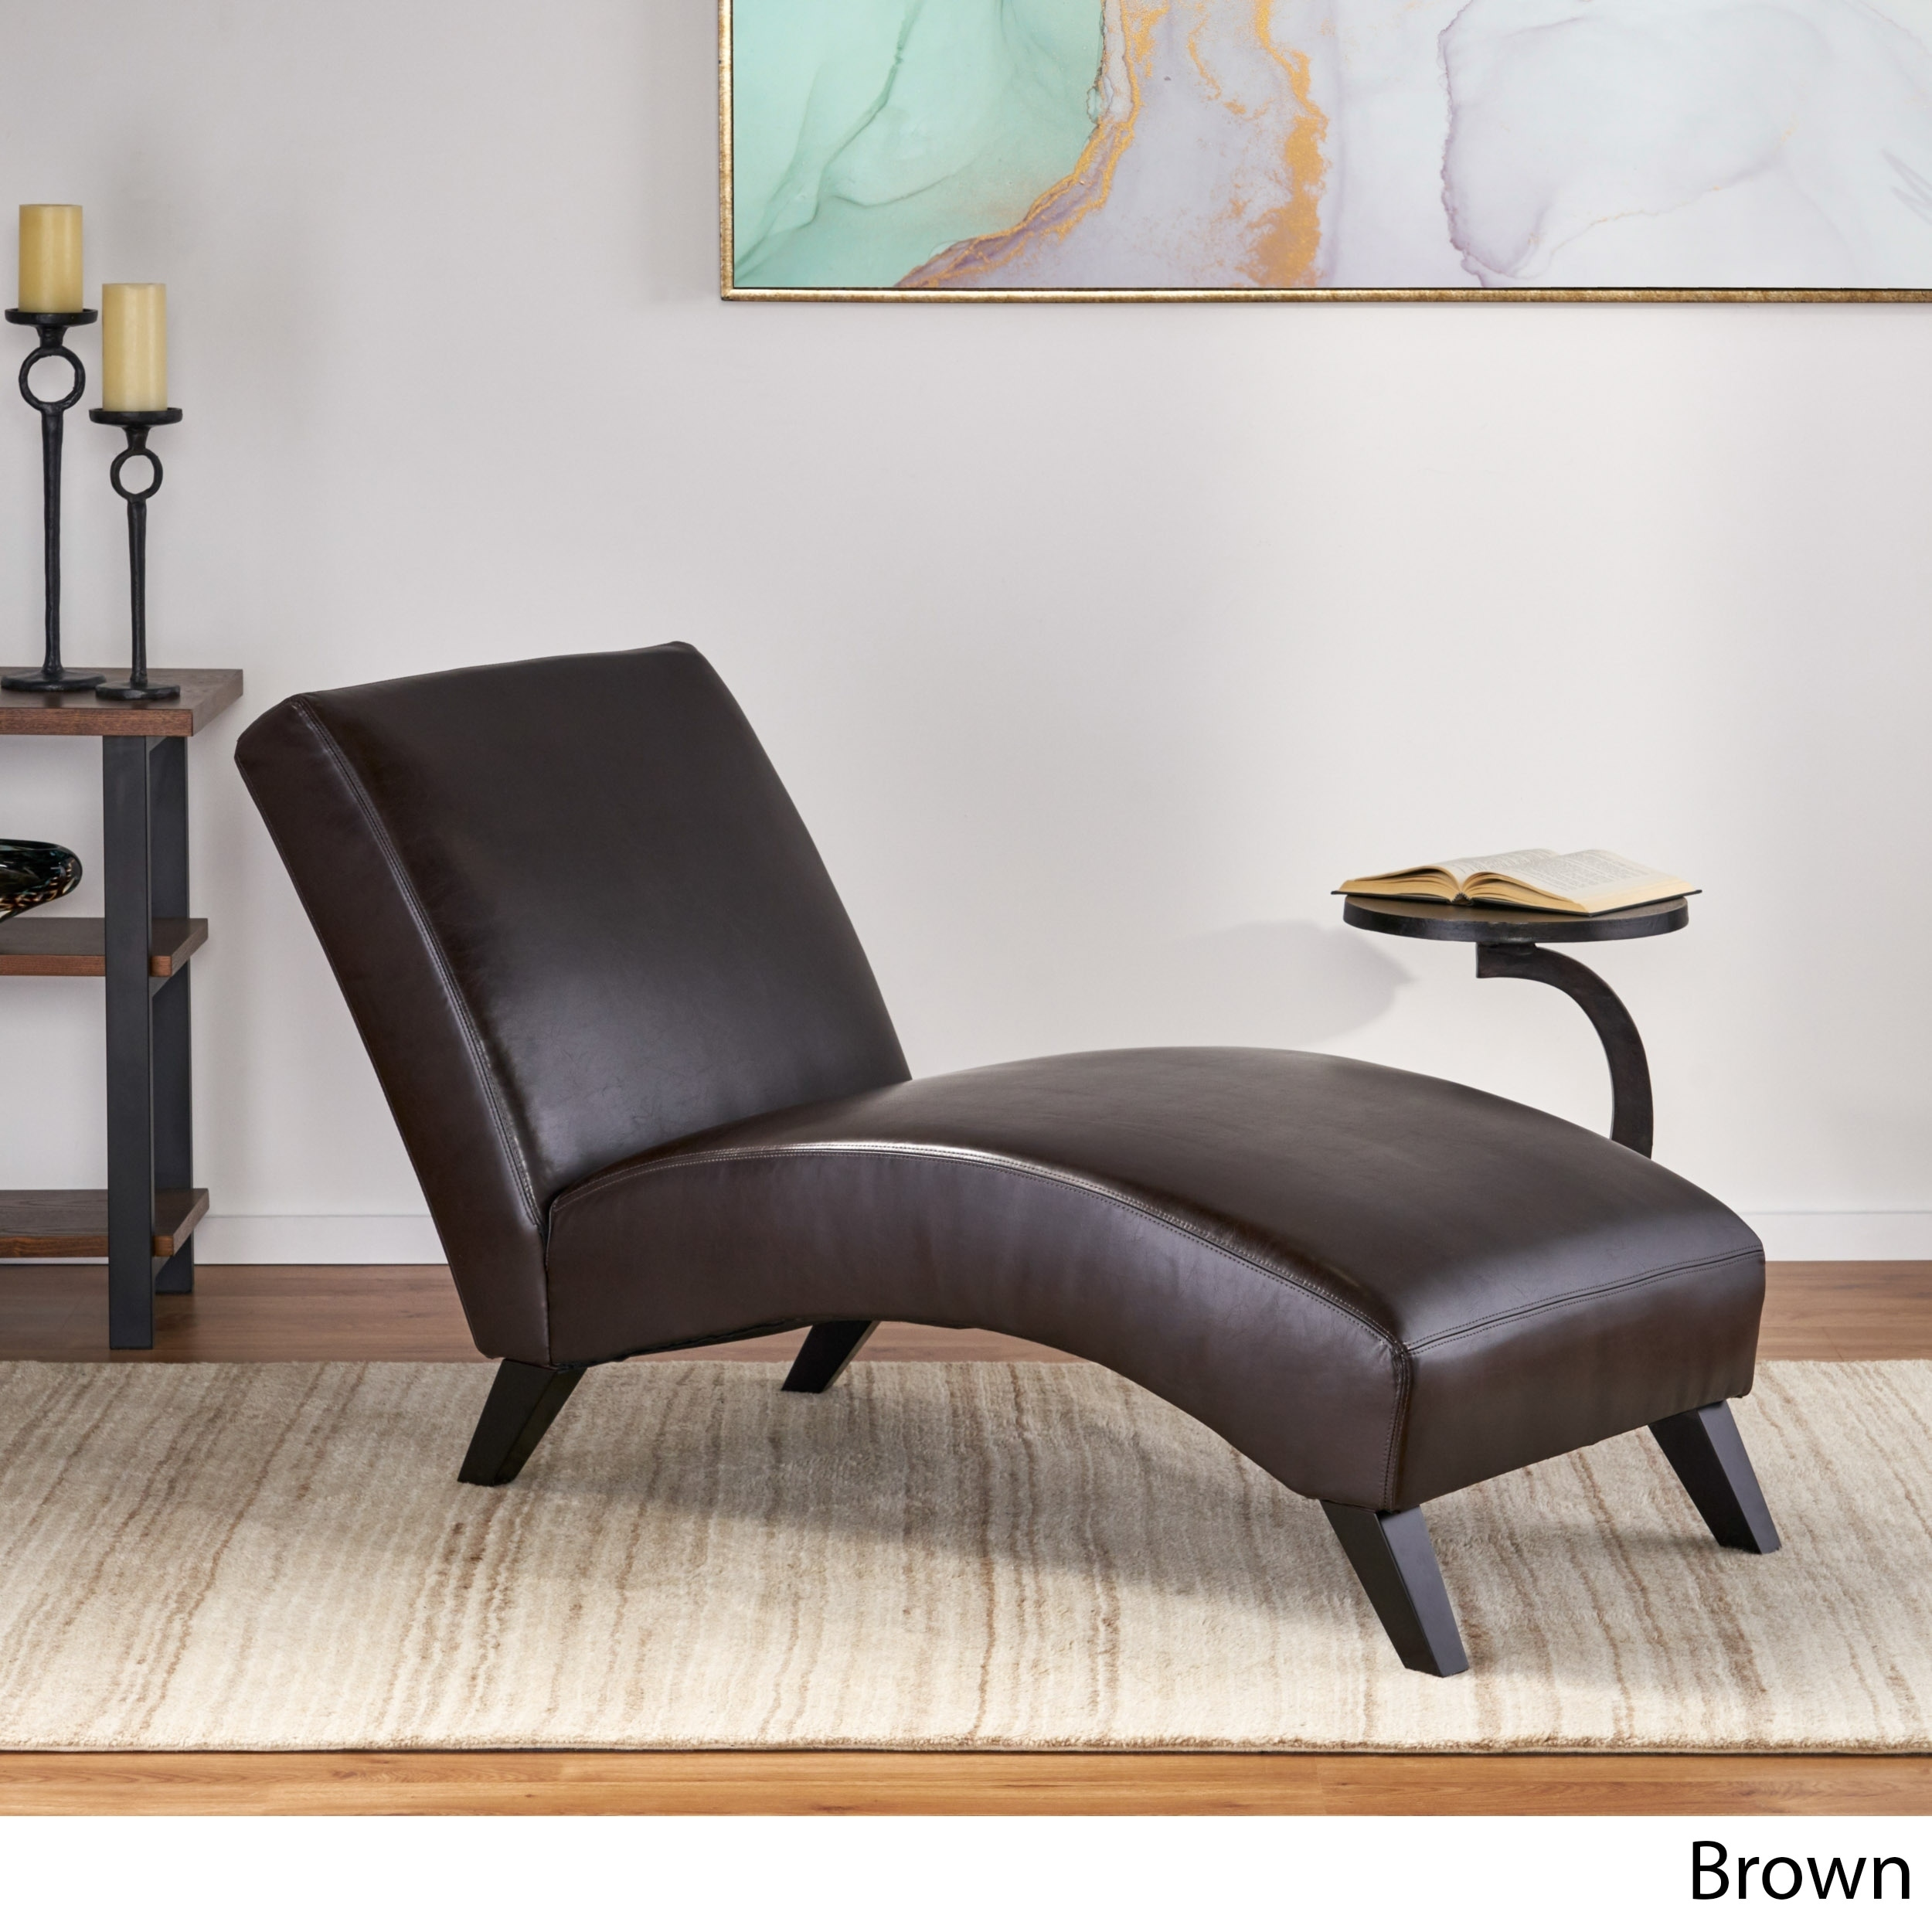 Shop Black Friday Deals On Finlay Leather Chaise Lounge By Christopher Knight Home On Sale Overstock 9310617